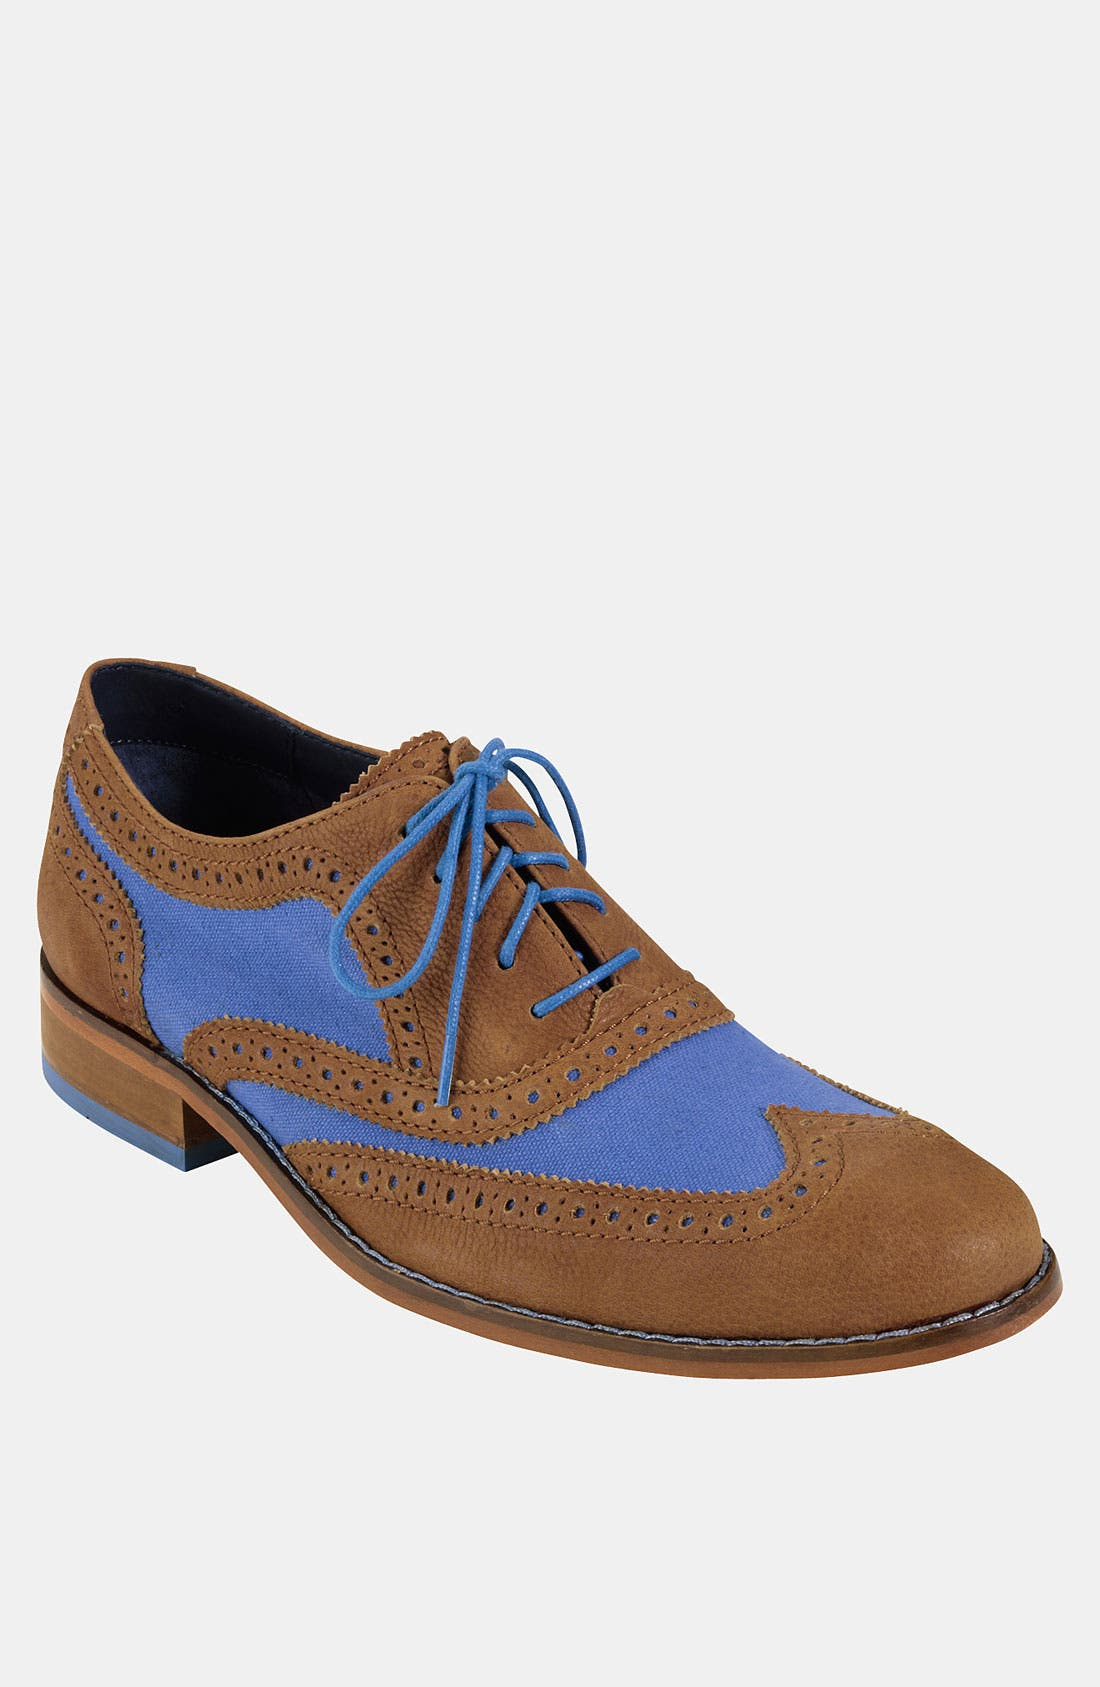 Alternate Image 1 Selected - Cole Haan 'Air Colton' Spectator Shoe